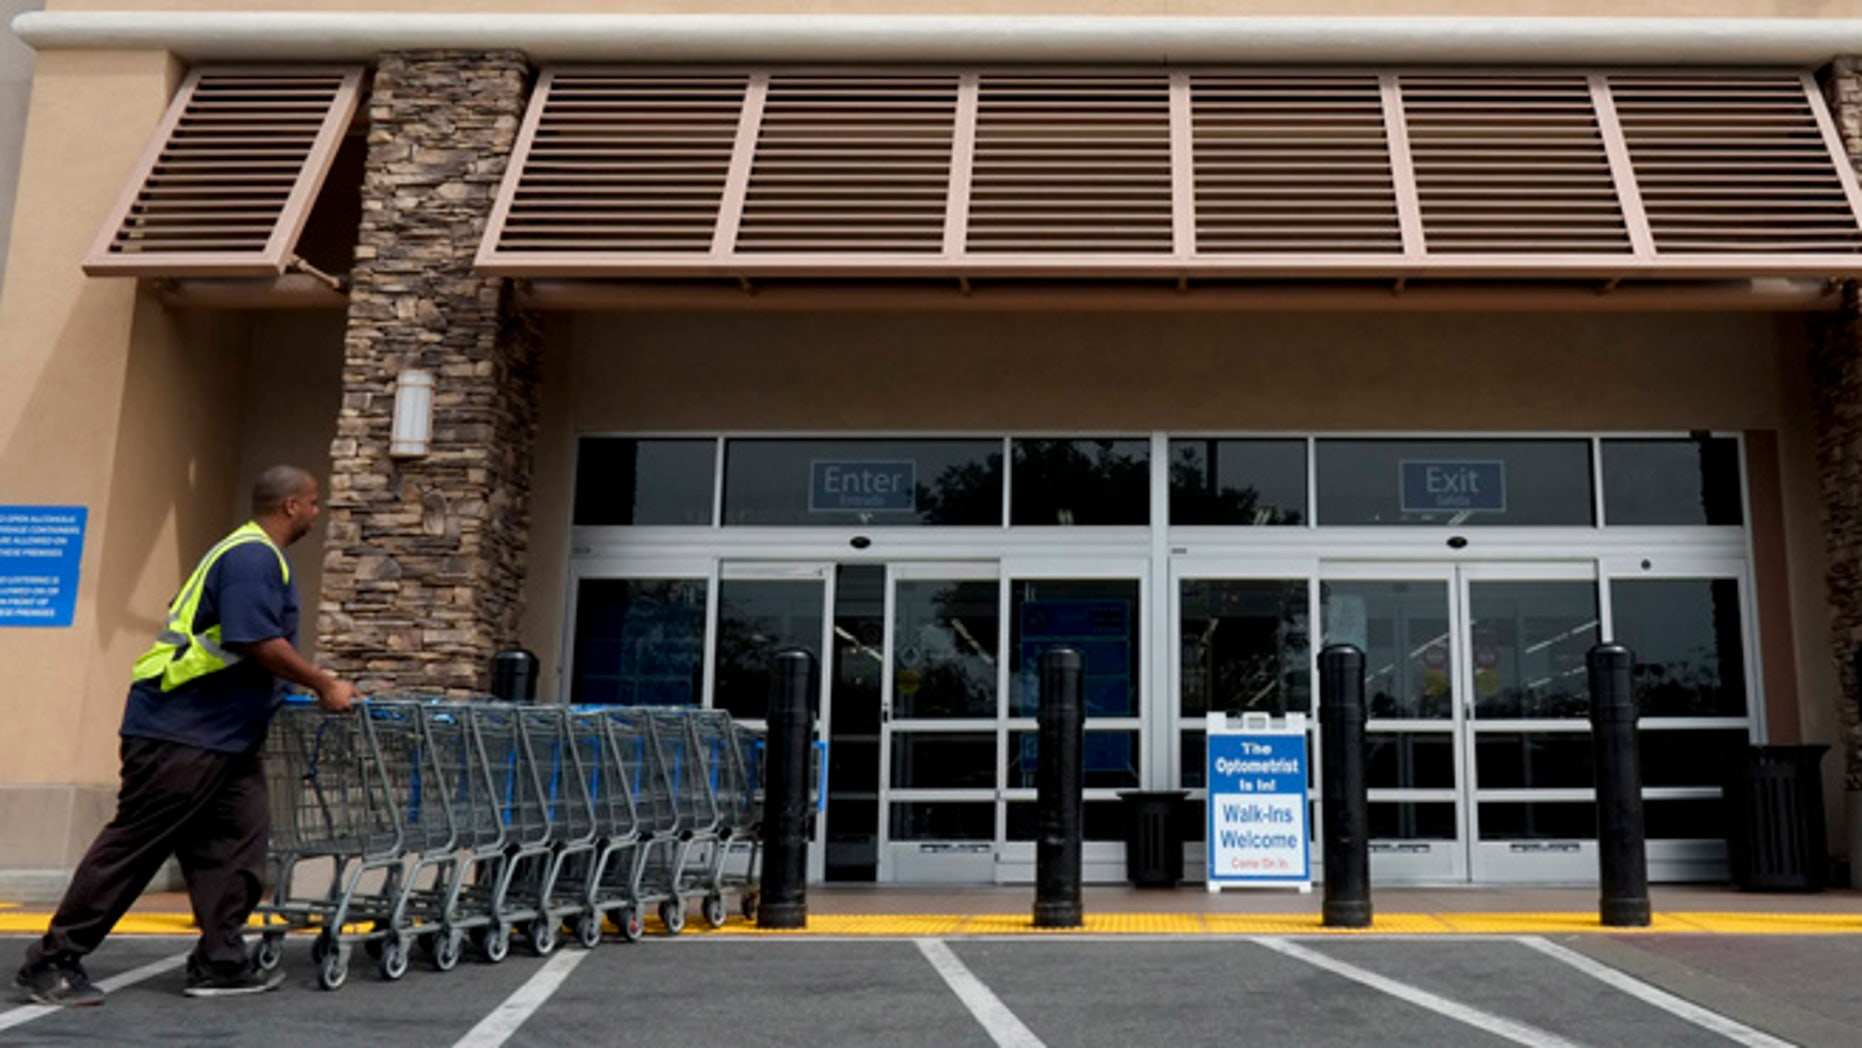 In this May 9, 2013 file photo, a worker pushes shopping carts in front of a Wal-Mart store in La Habra, Calif. From Wal-Mart to General Motors to PepsiCo, companies are increasingly turning to temporary workers and to a much larger universe of freelancers, contract workers and consultants.